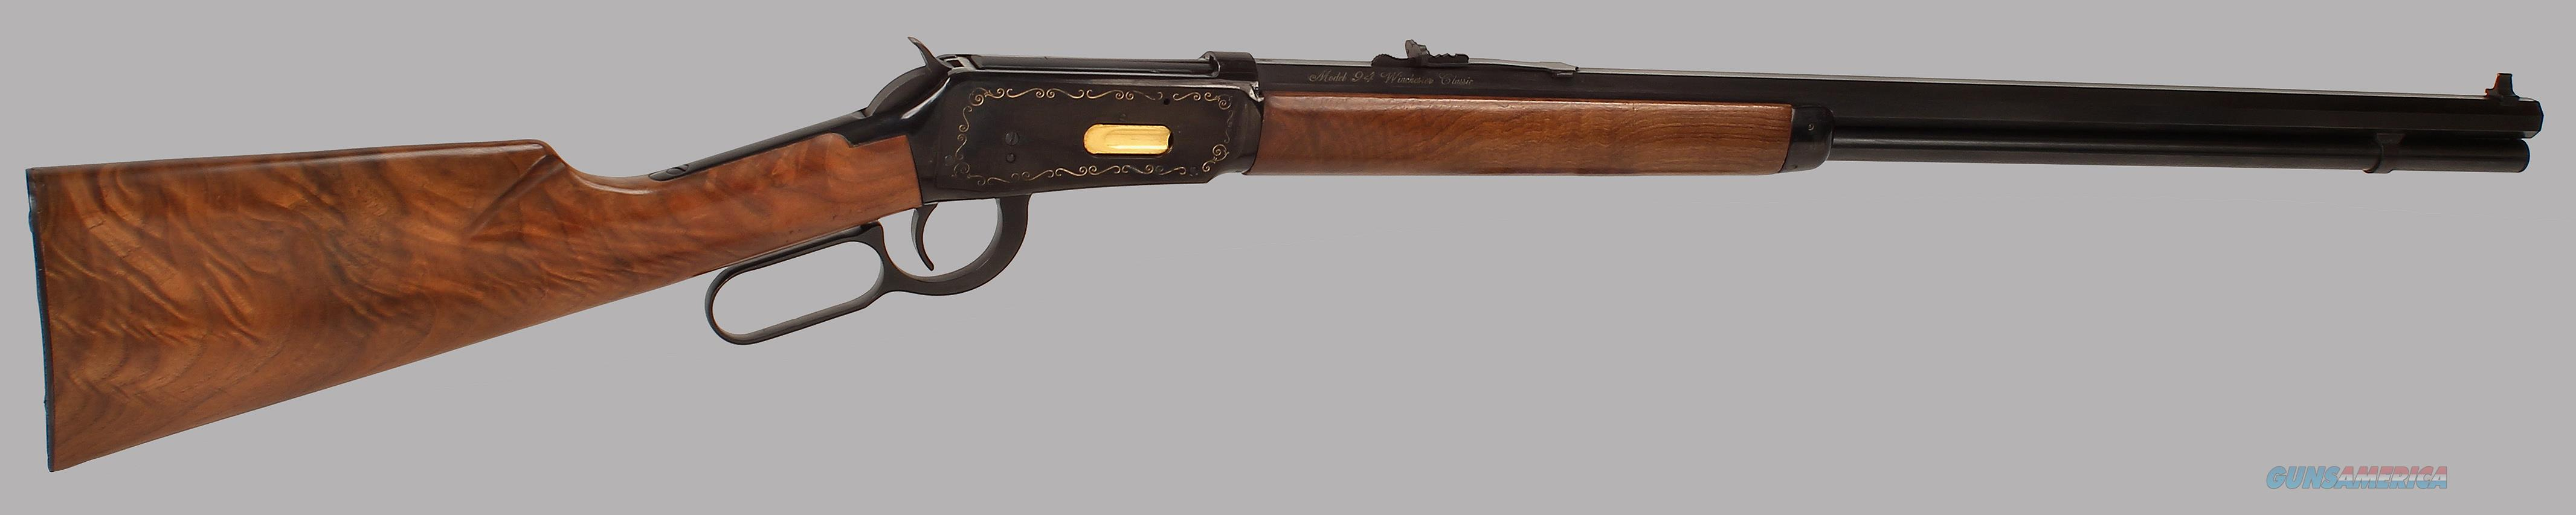 Winchester 30-30 Lever Action Model 94 Classic Rifle  Guns > Rifles > Winchester Rifles - Modern Lever > Model 94 > Post-64